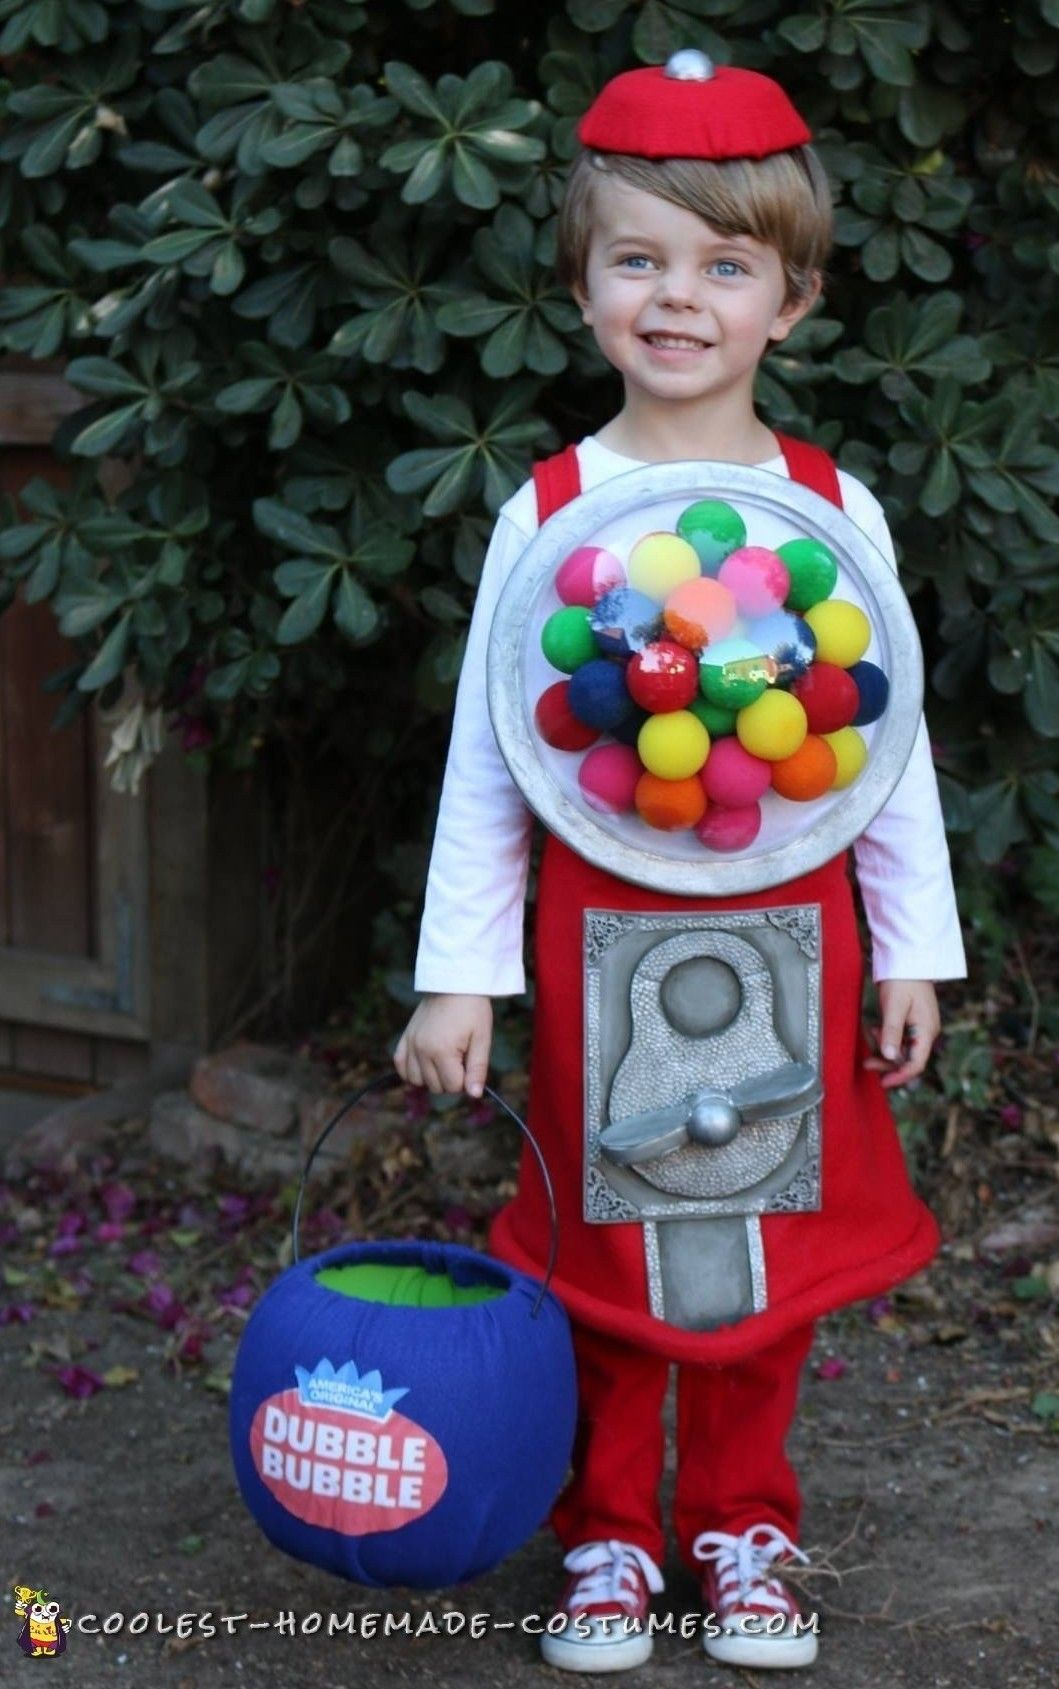 Coolest Homemade Costumes for DIY Costume Enthusiasts  sc 1 st  Pinterest & Cutest Homemade Little Gumball Machine | Pinterest | Homemade ...